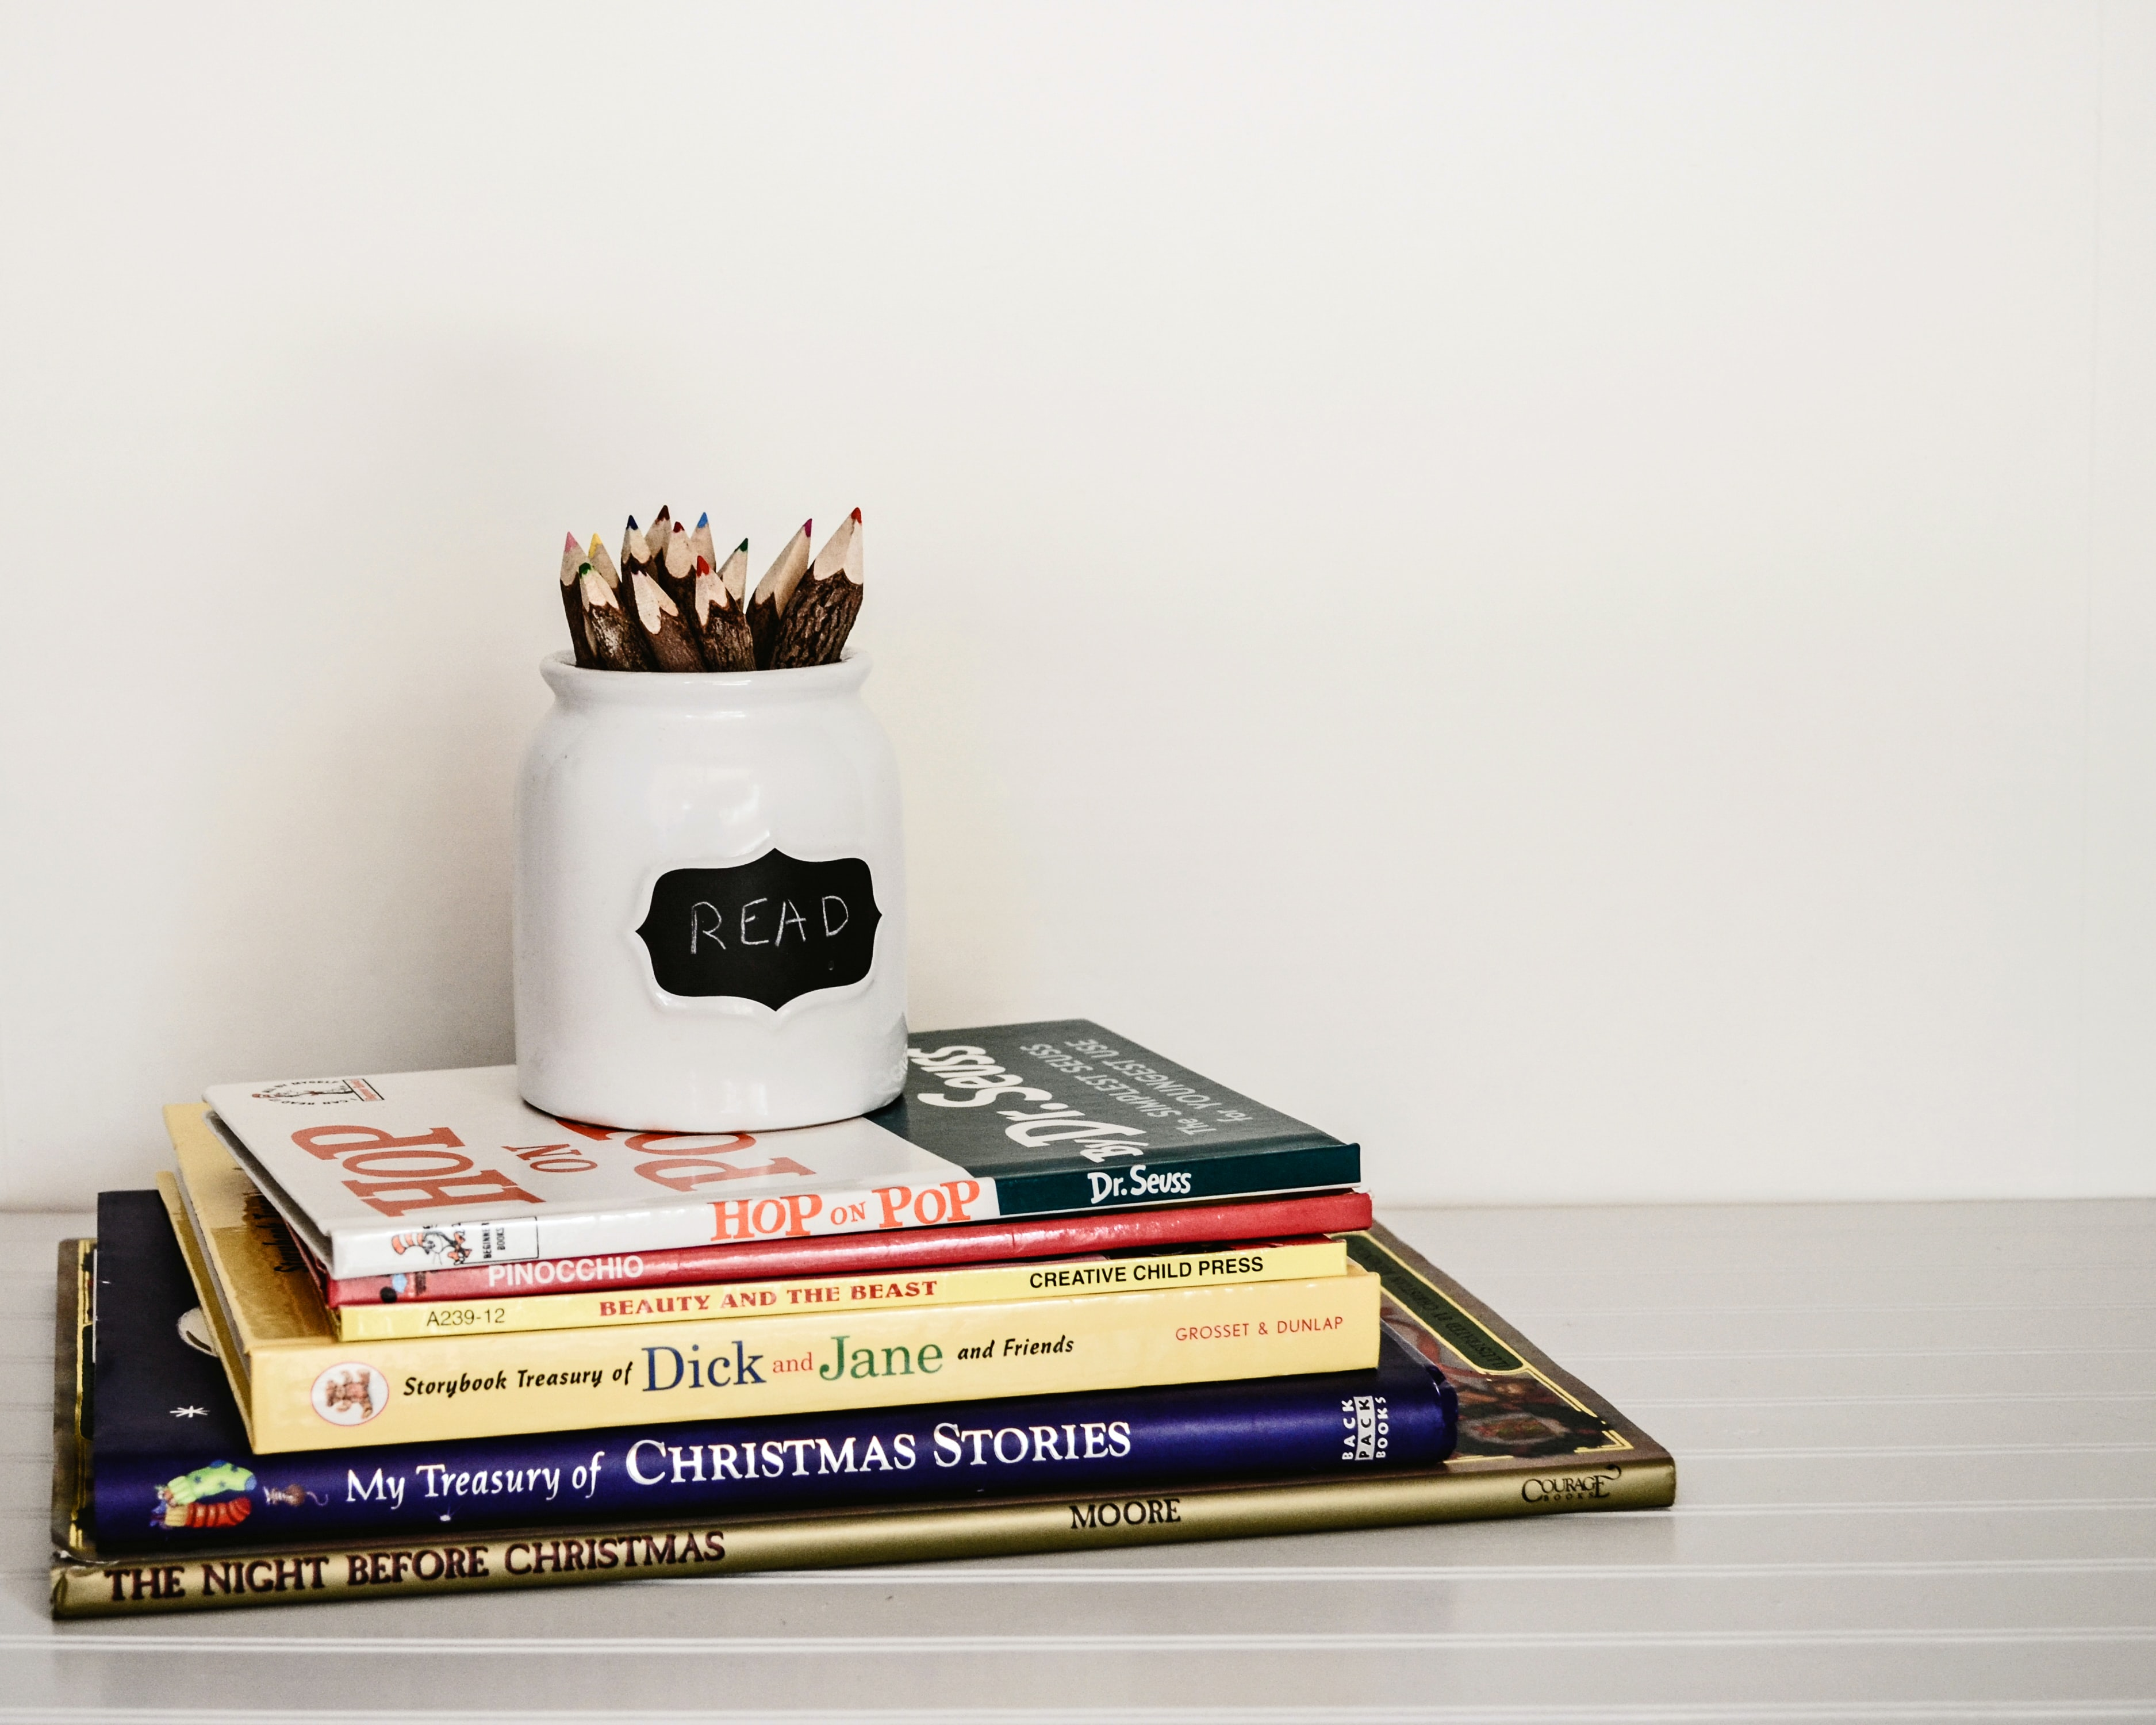 white ceramic pencil organizer on top of stack of books